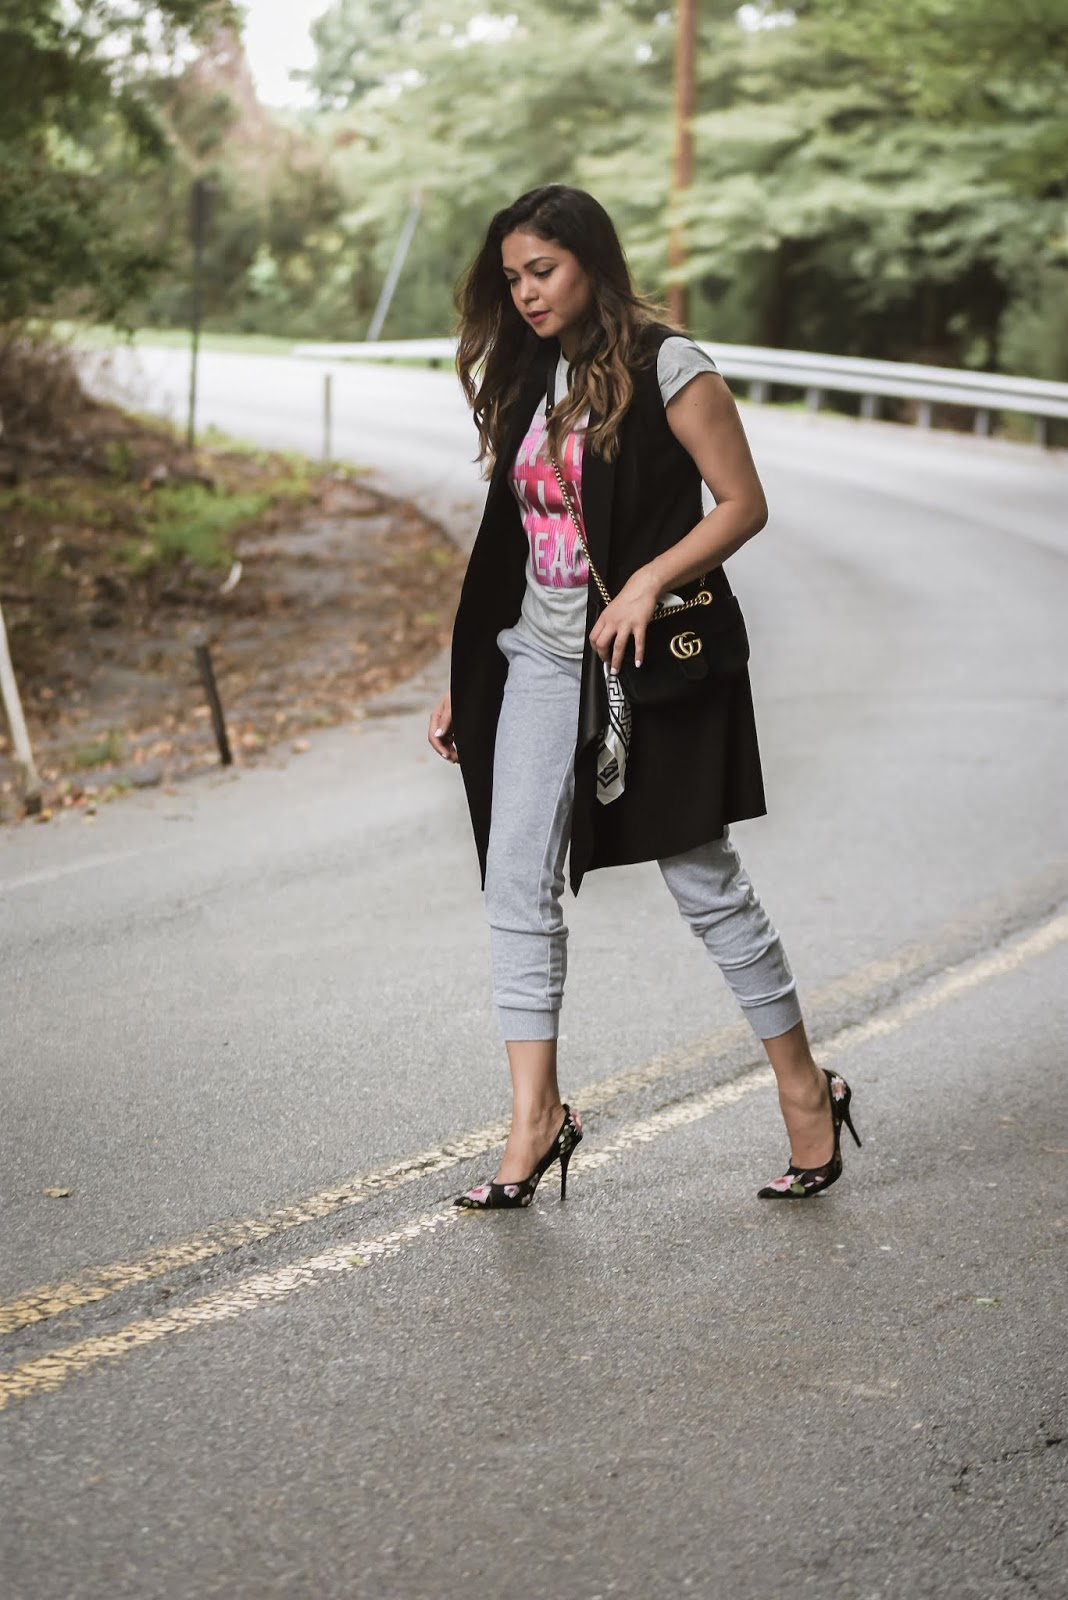 clarksburg premium outlets, athleisure outfit, heels, sweat pants, street style, embroidered high heels, vest style, layered fall look, style diaries, fashion, ootd, look of the day, myriad musings